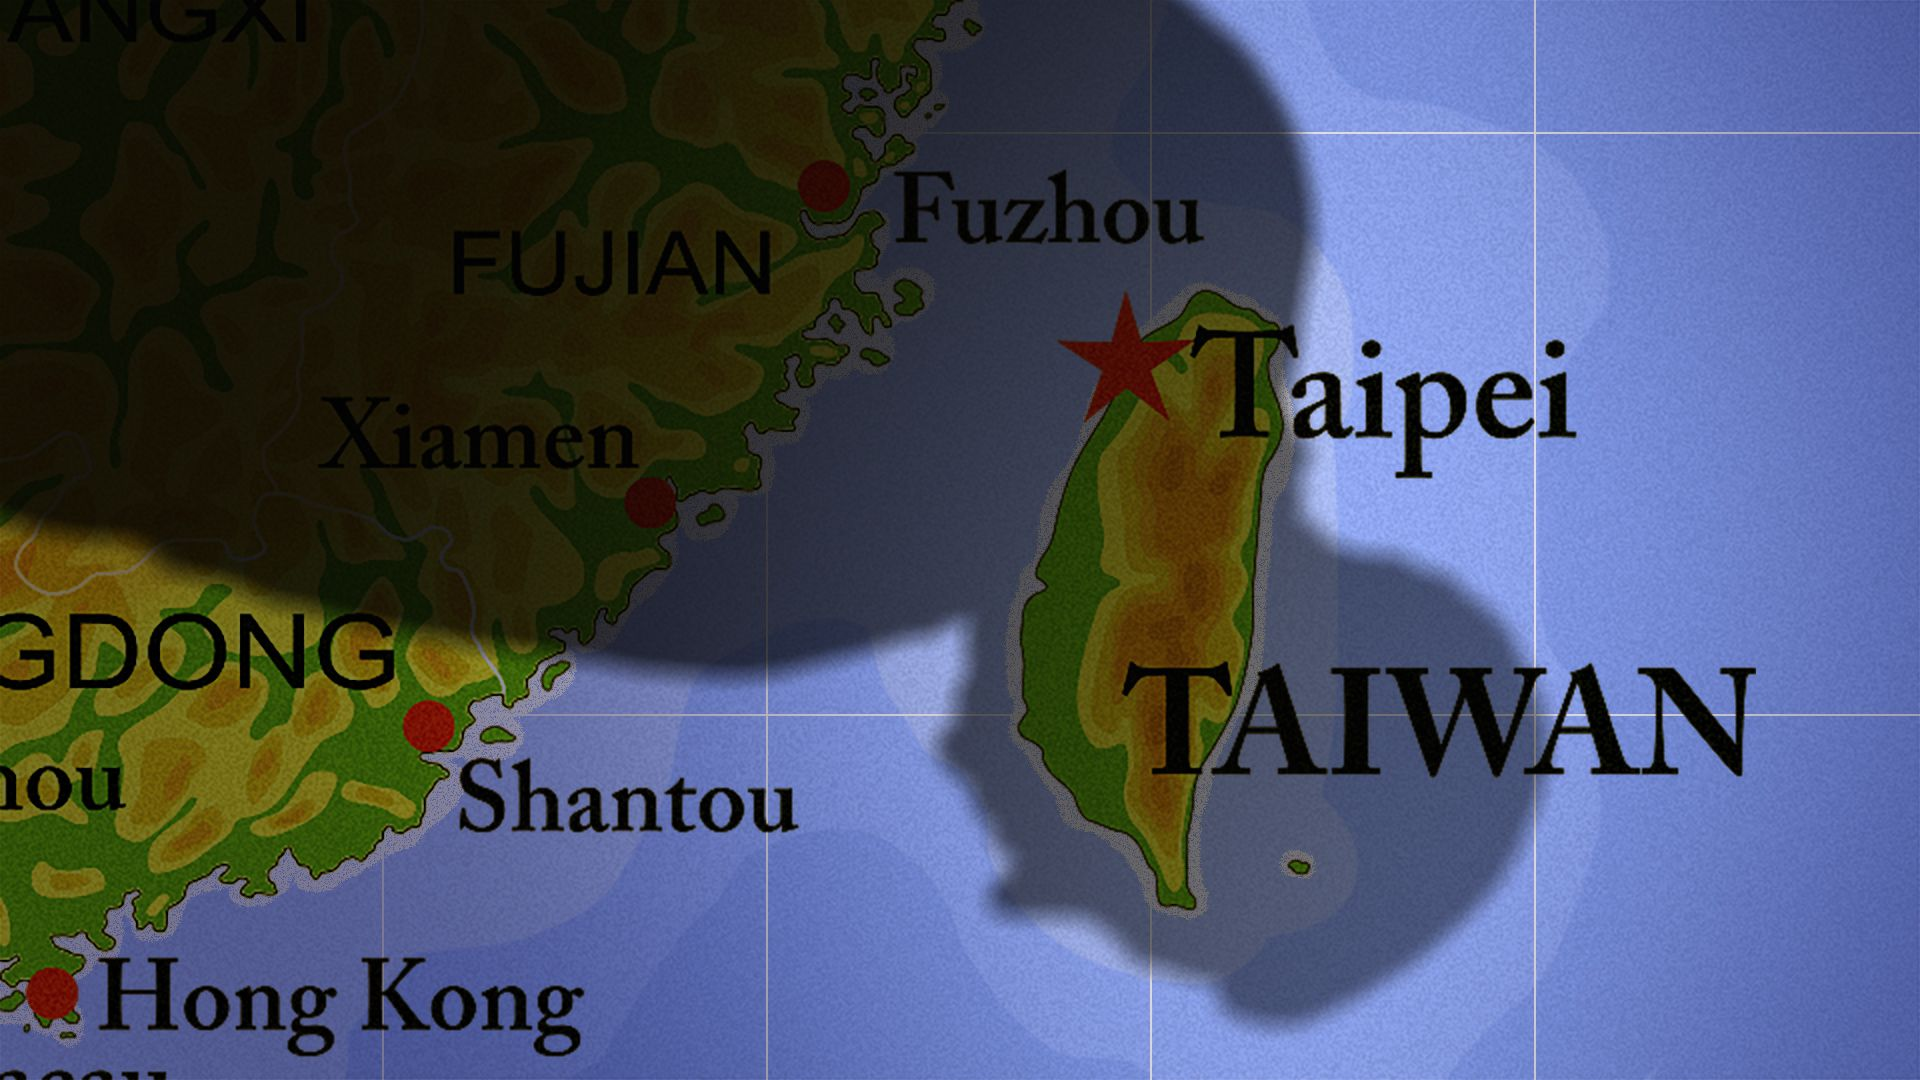 Illustration of a map of the coast of China and Taiwan, with a giant shadow of Xi Jinping looming over it.